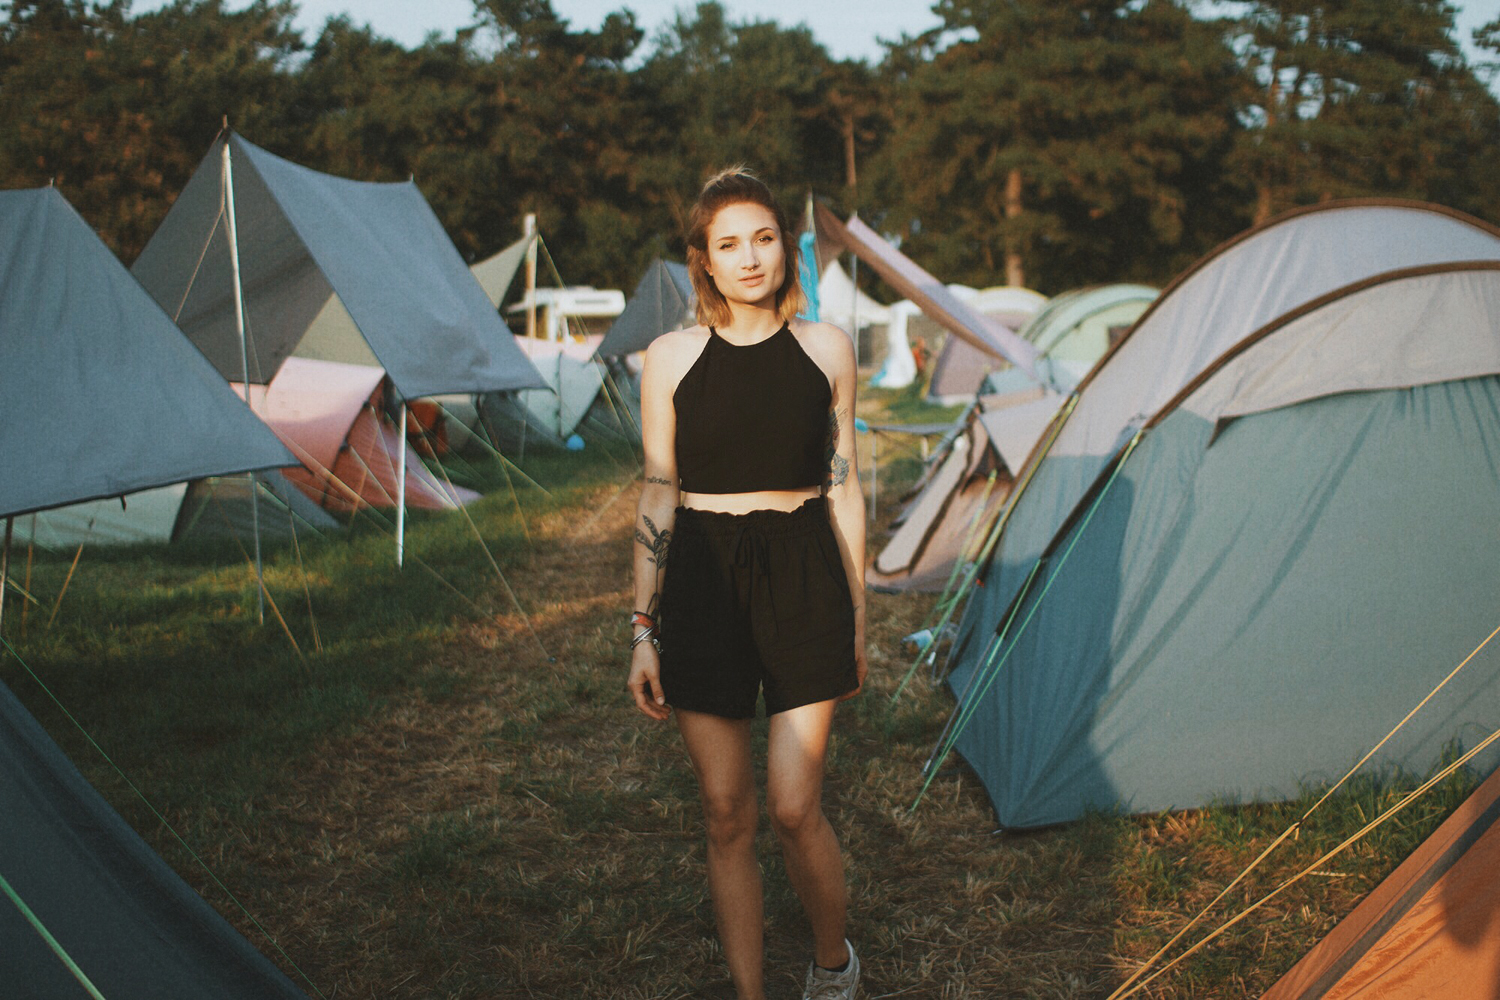 Deichbrand Festival: Outfit & Random Facts